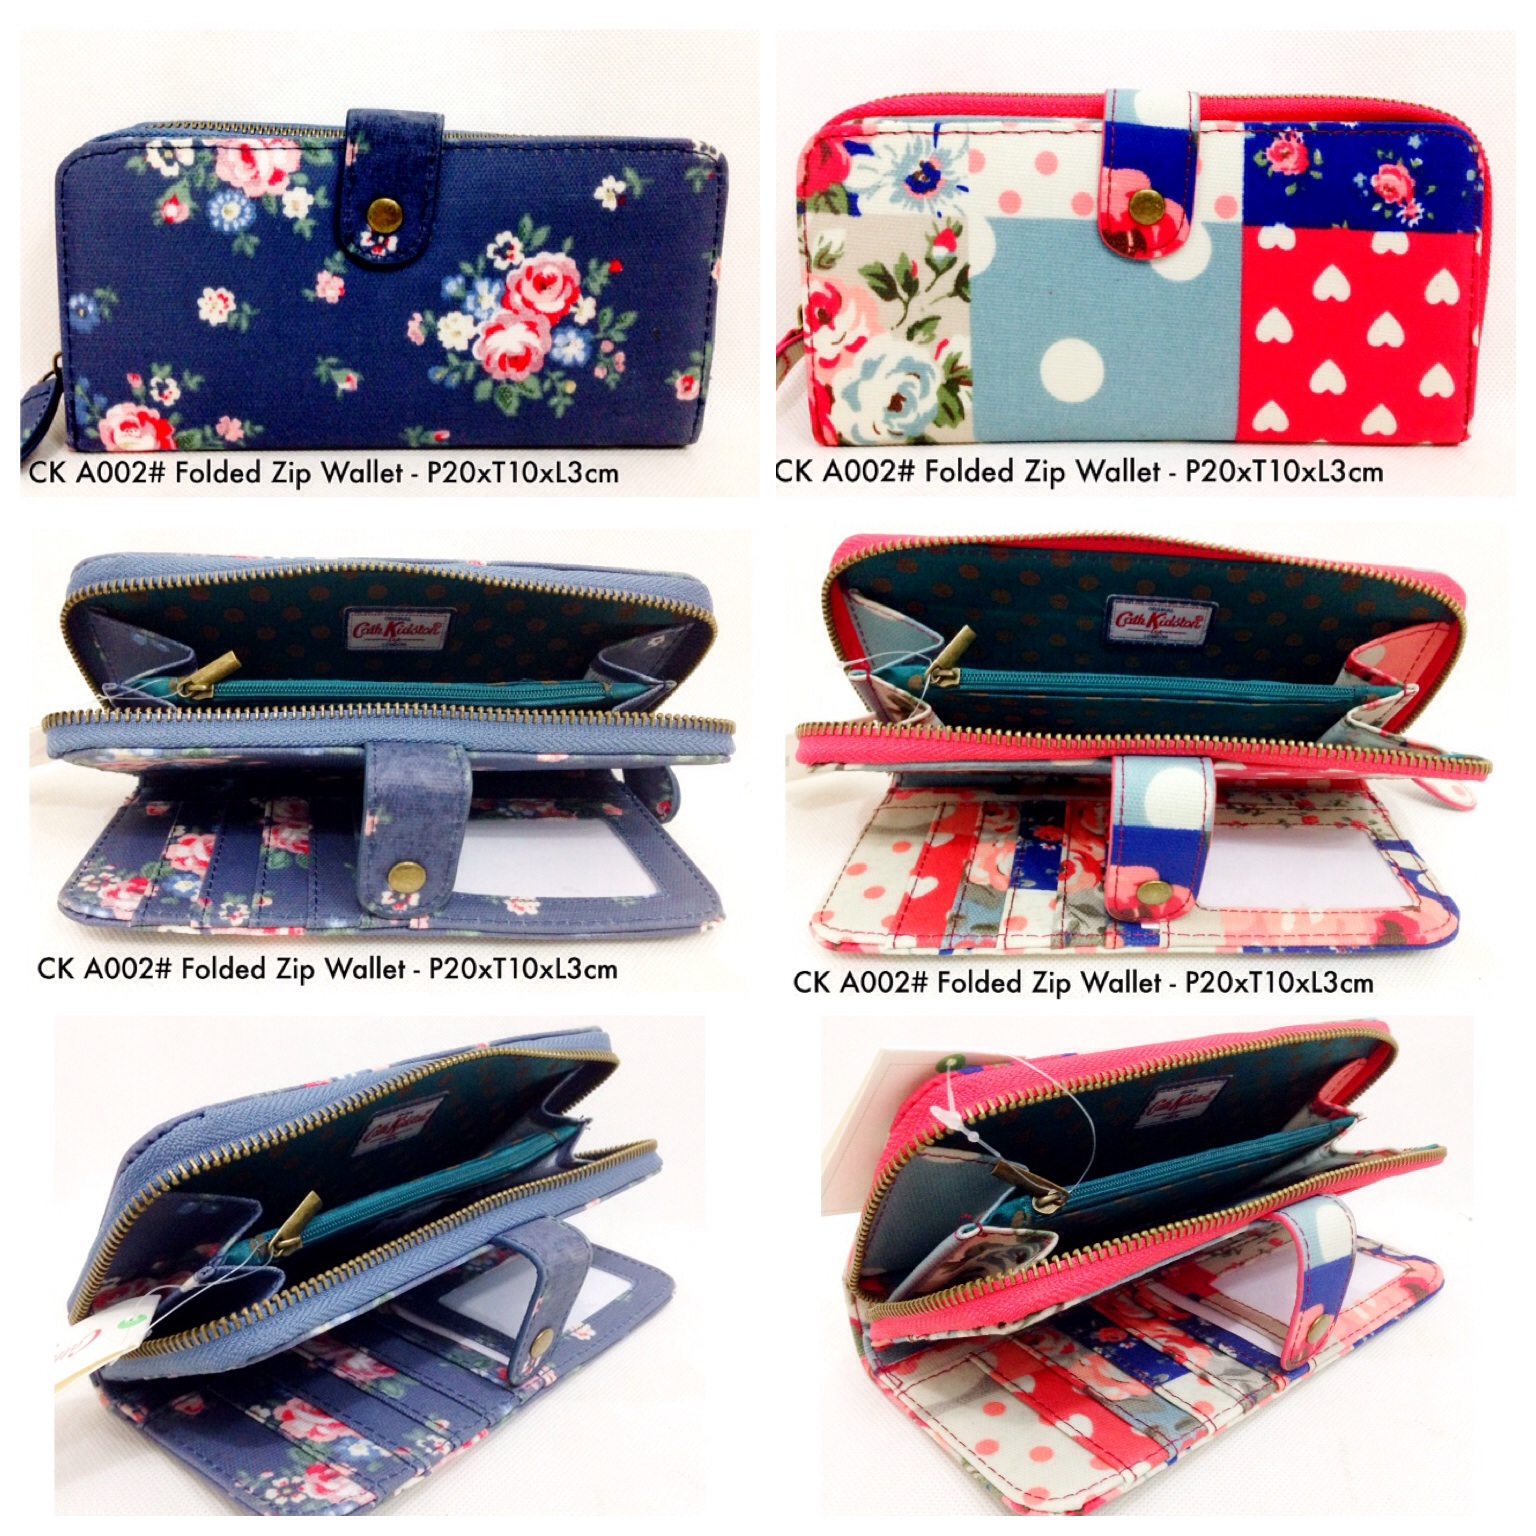 DISCOUNT DOMPET CATH KIDSTON A002 #FOLDED ZIP WALLET TERMURAH